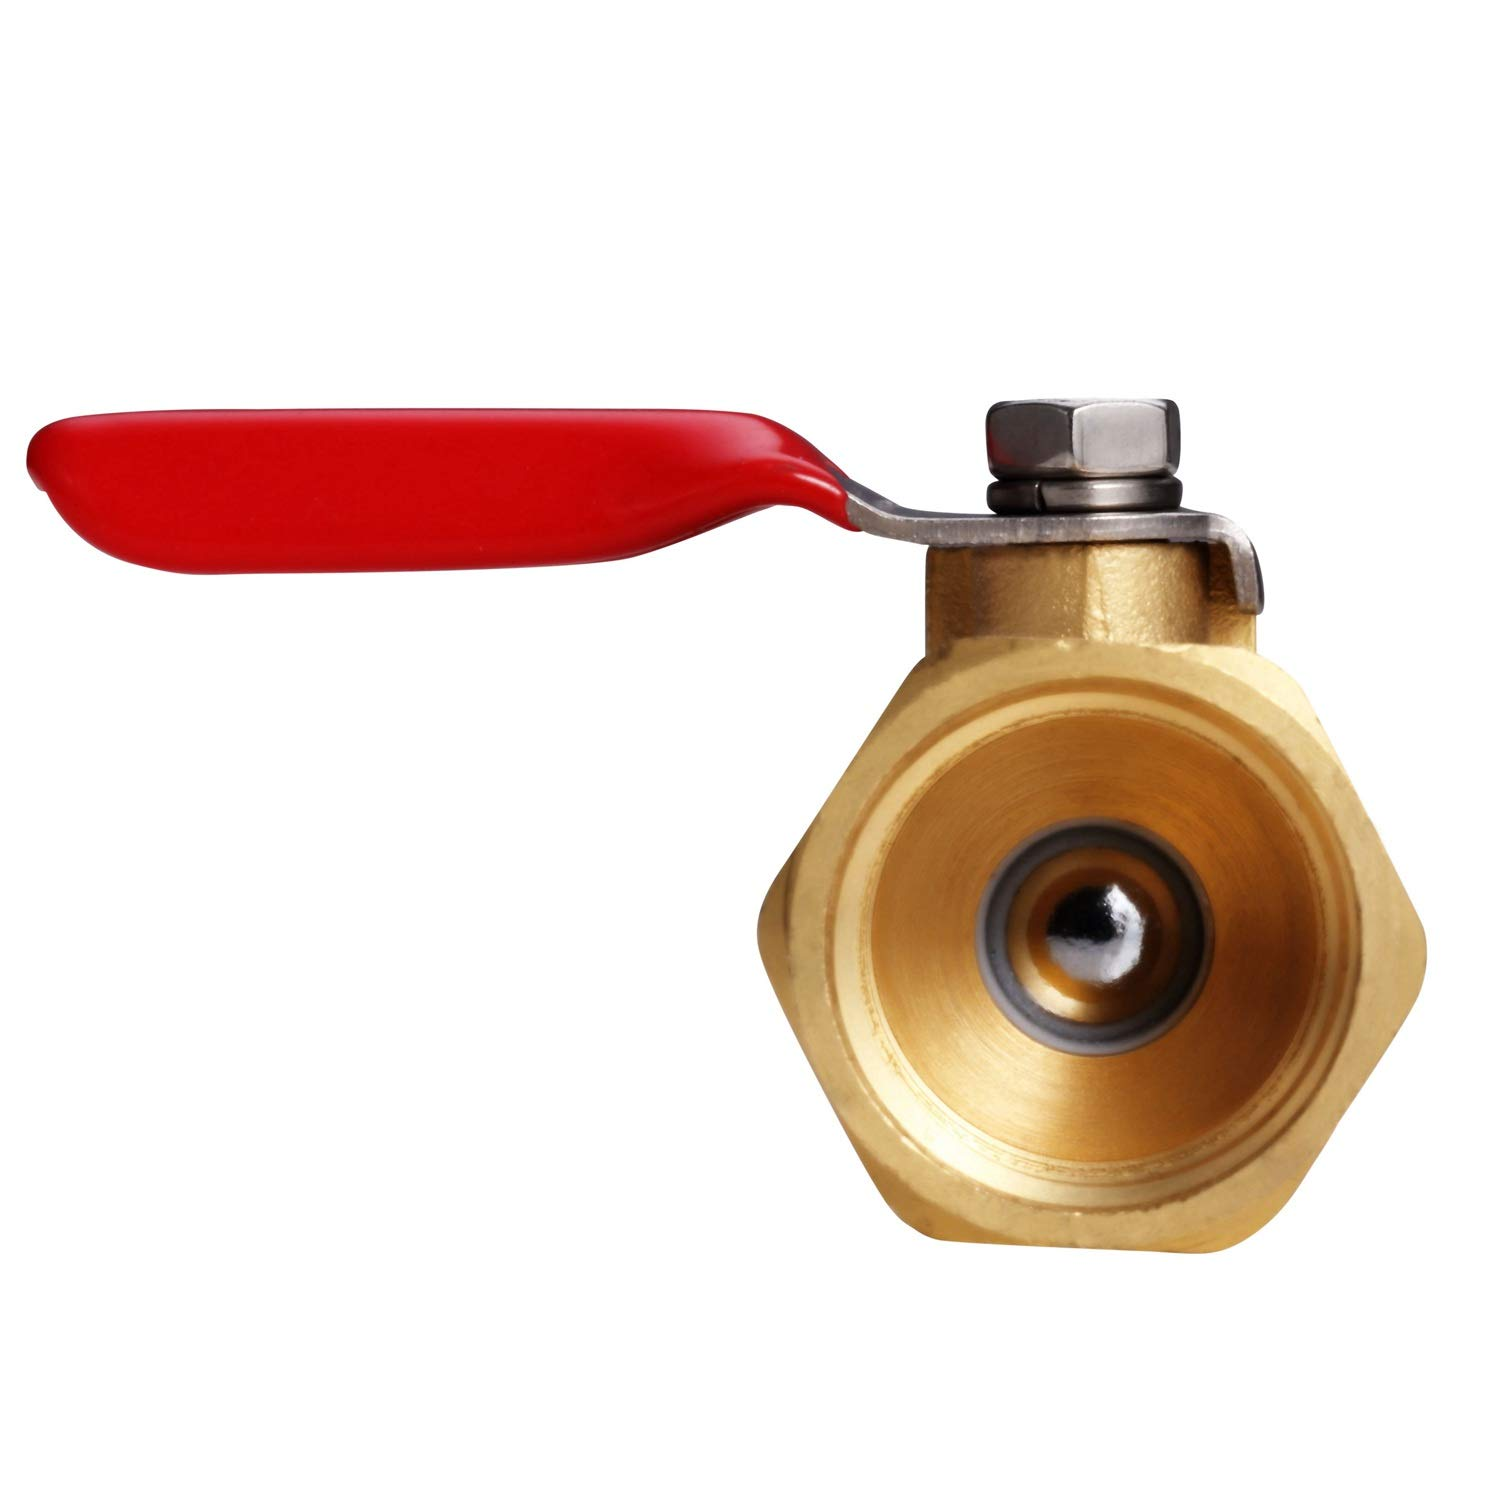 and Gas Rated to 600 WOG Water 180 Degree Operation Handle Oil 1//2 NPT Female x 1//2 INCH NPT Female Pipe Fittings Litorange 2 PCS Heavy Duty Brass Inline Mini Ball Valve Shut Off Switch